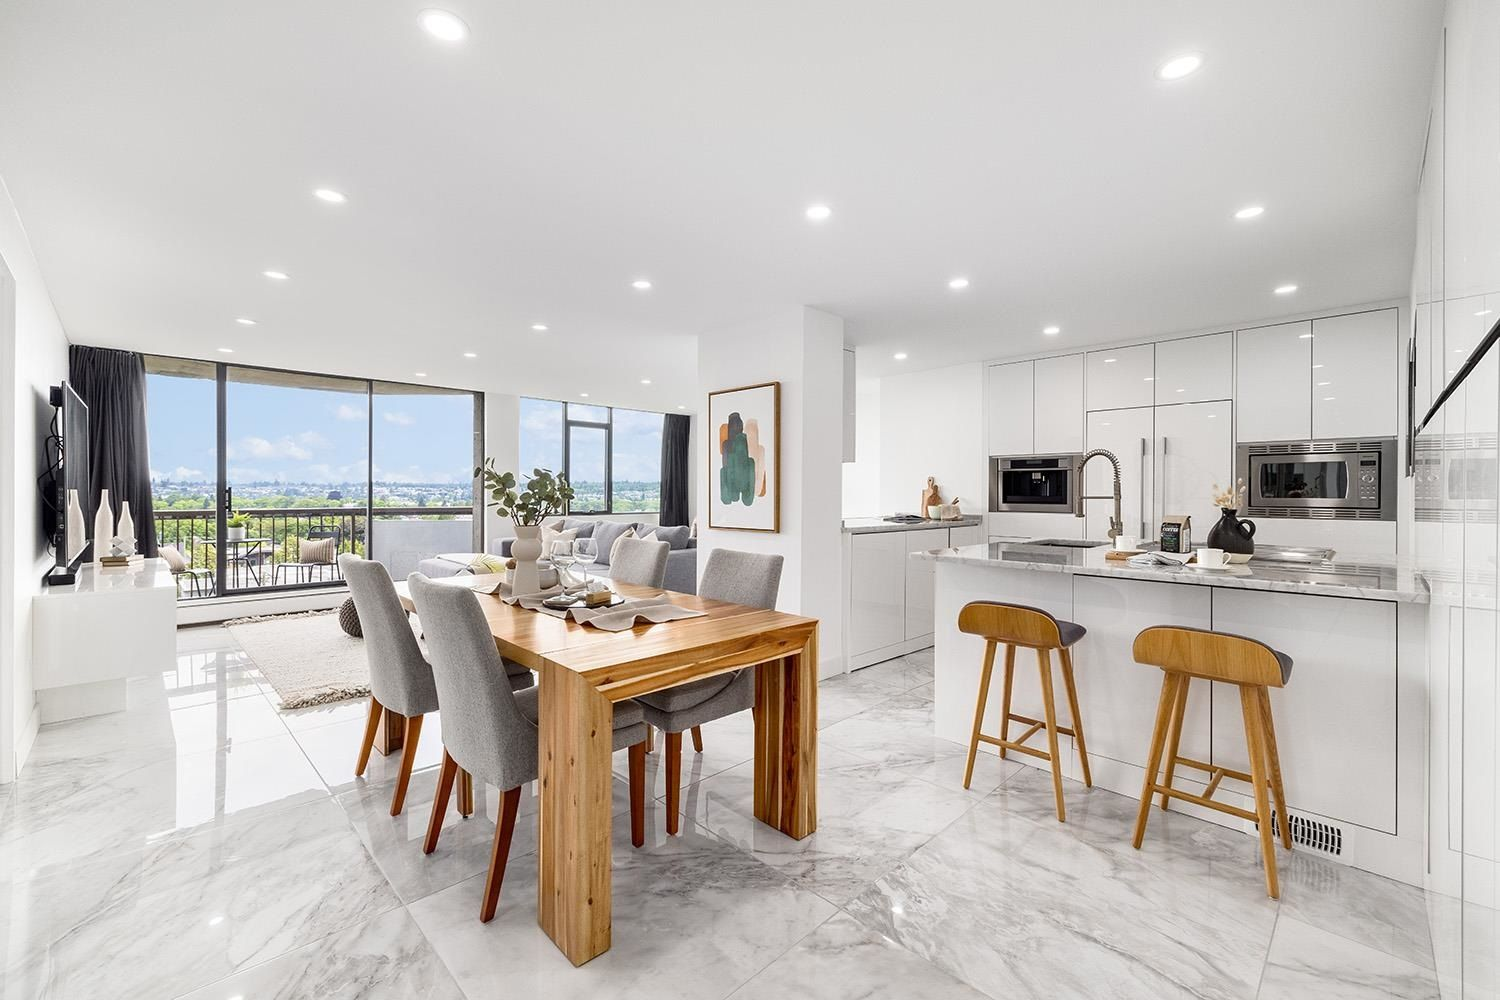 """Main Photo: 705 2445 W 3 Avenue in Vancouver: Kitsilano Condo for sale in """"Carriage House"""" (Vancouver West)  : MLS®# R2602059"""